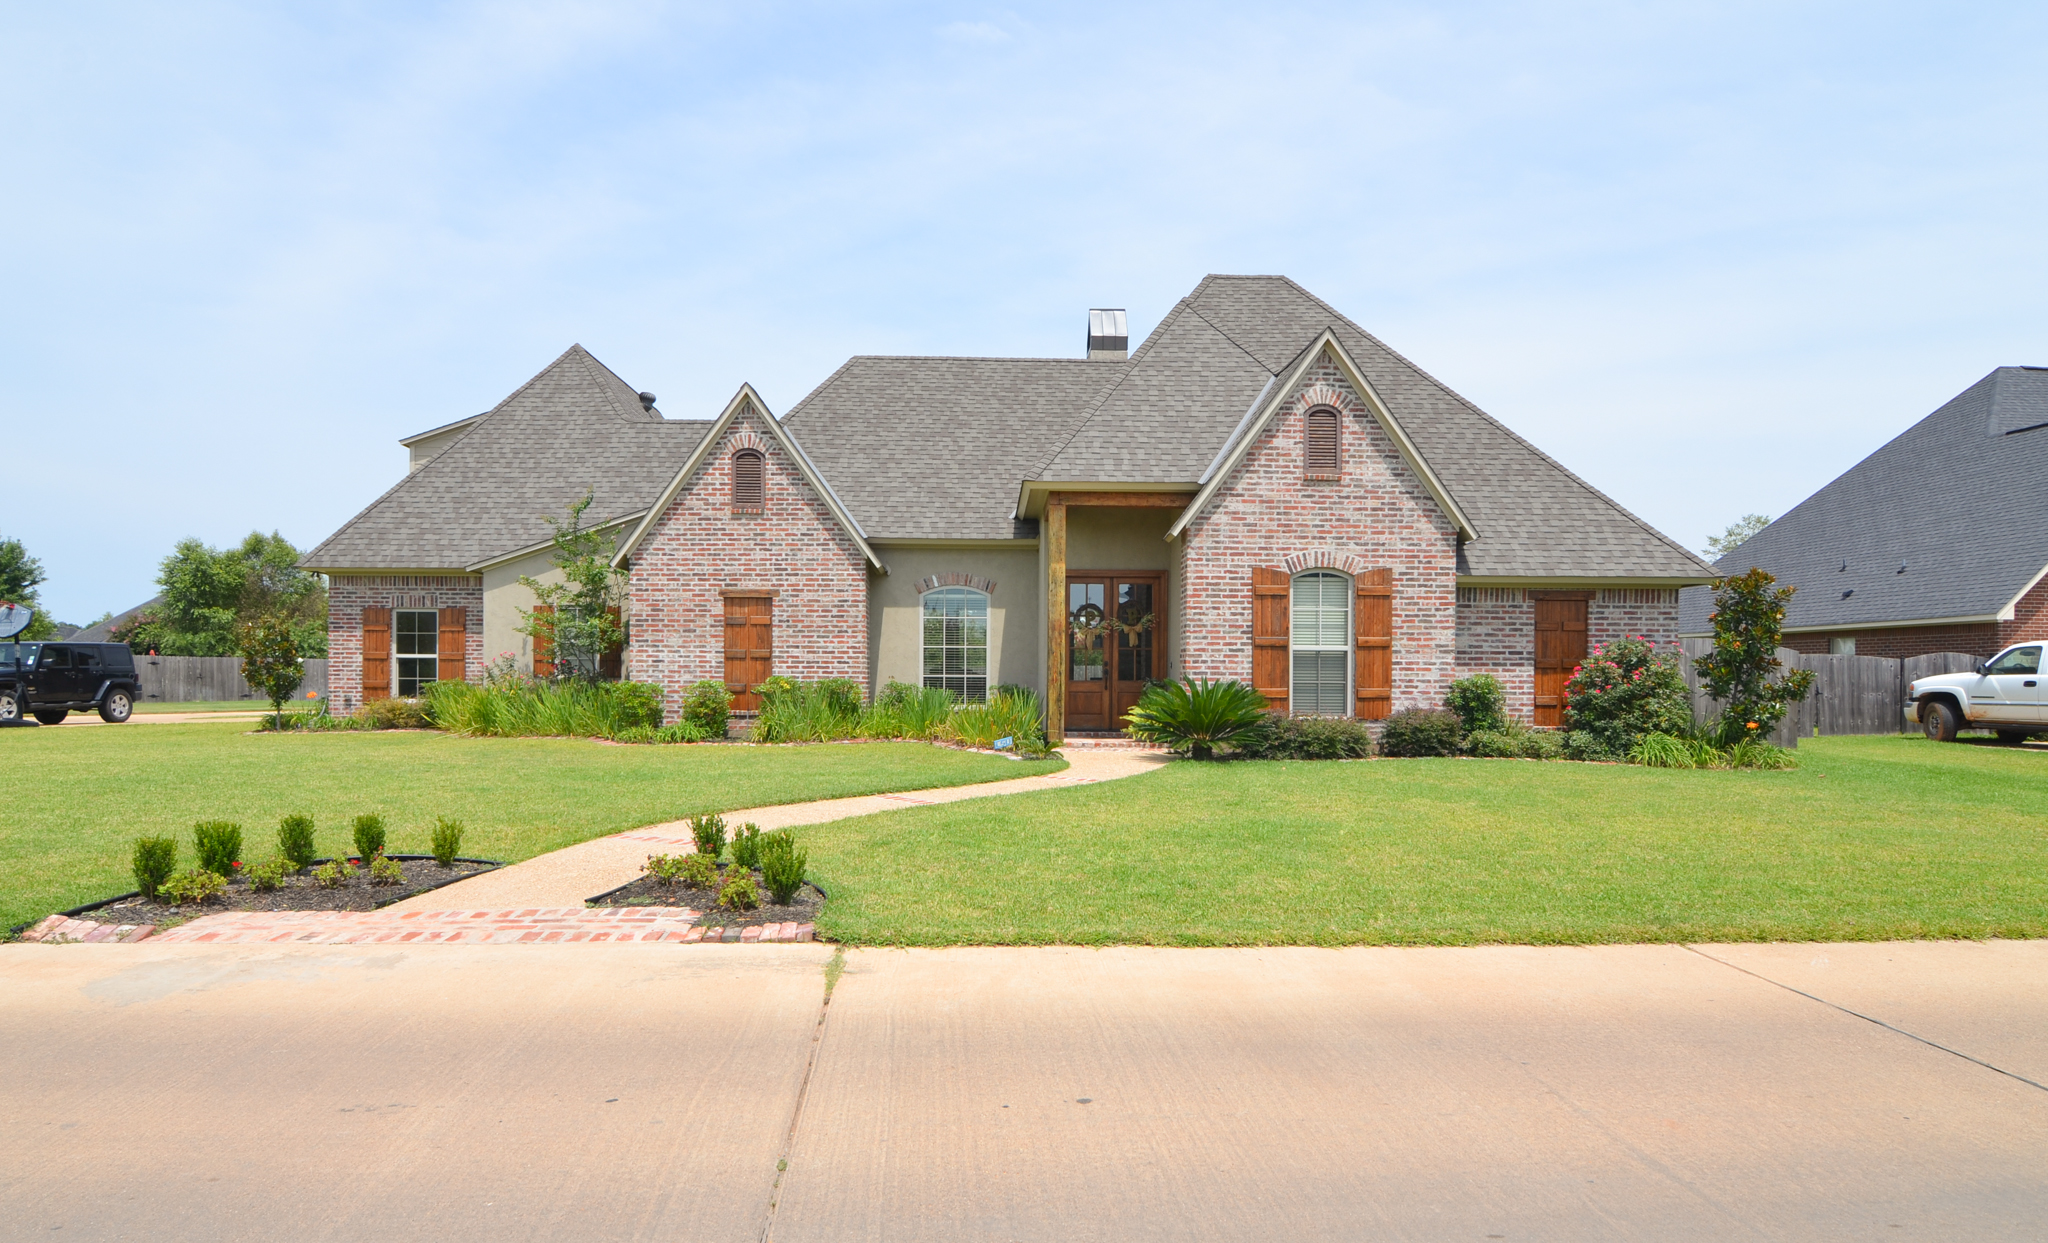 Another home sold in shreveport la by the chris hayes team for Home builders in shreveport la